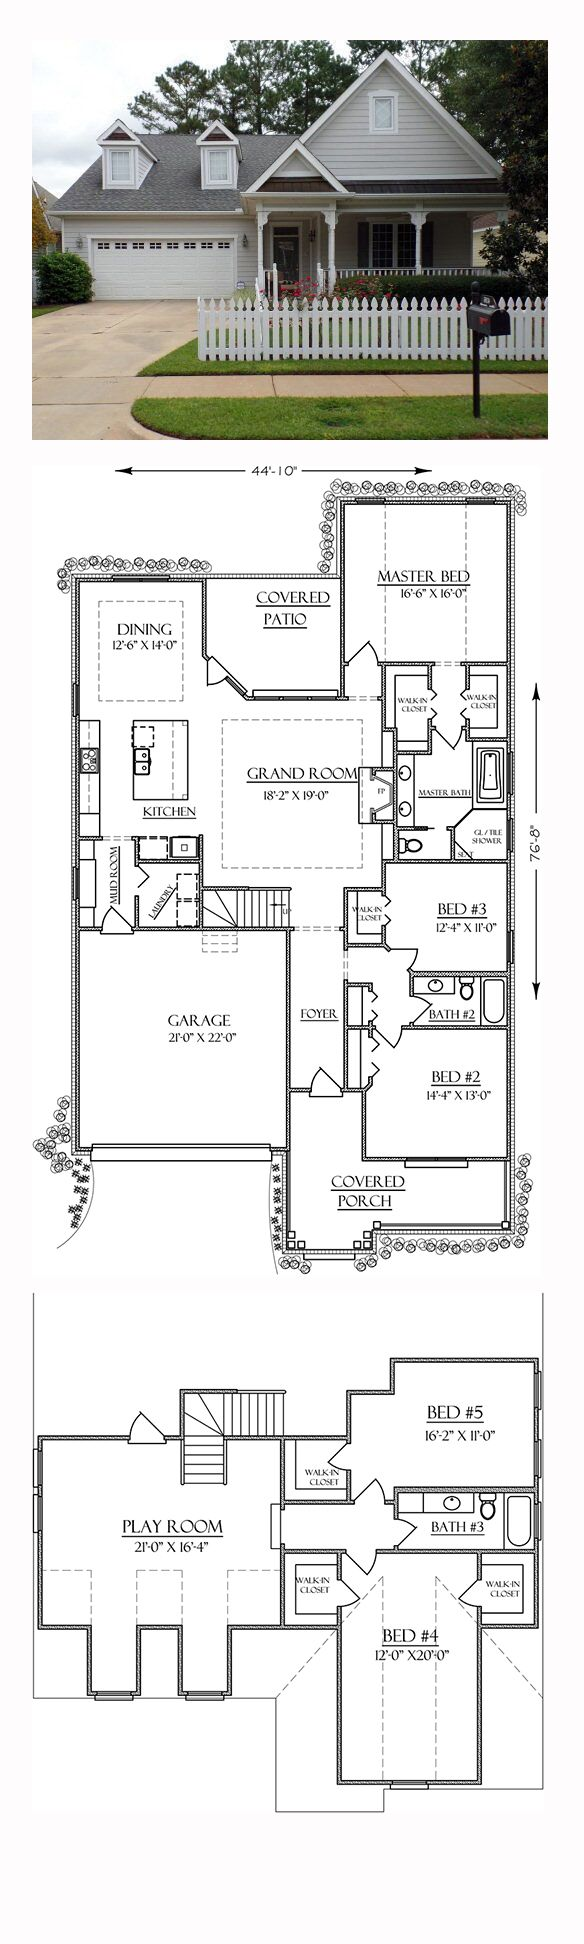 Best 25 5 bedroom house plans ideas on pinterest 4 New home plans